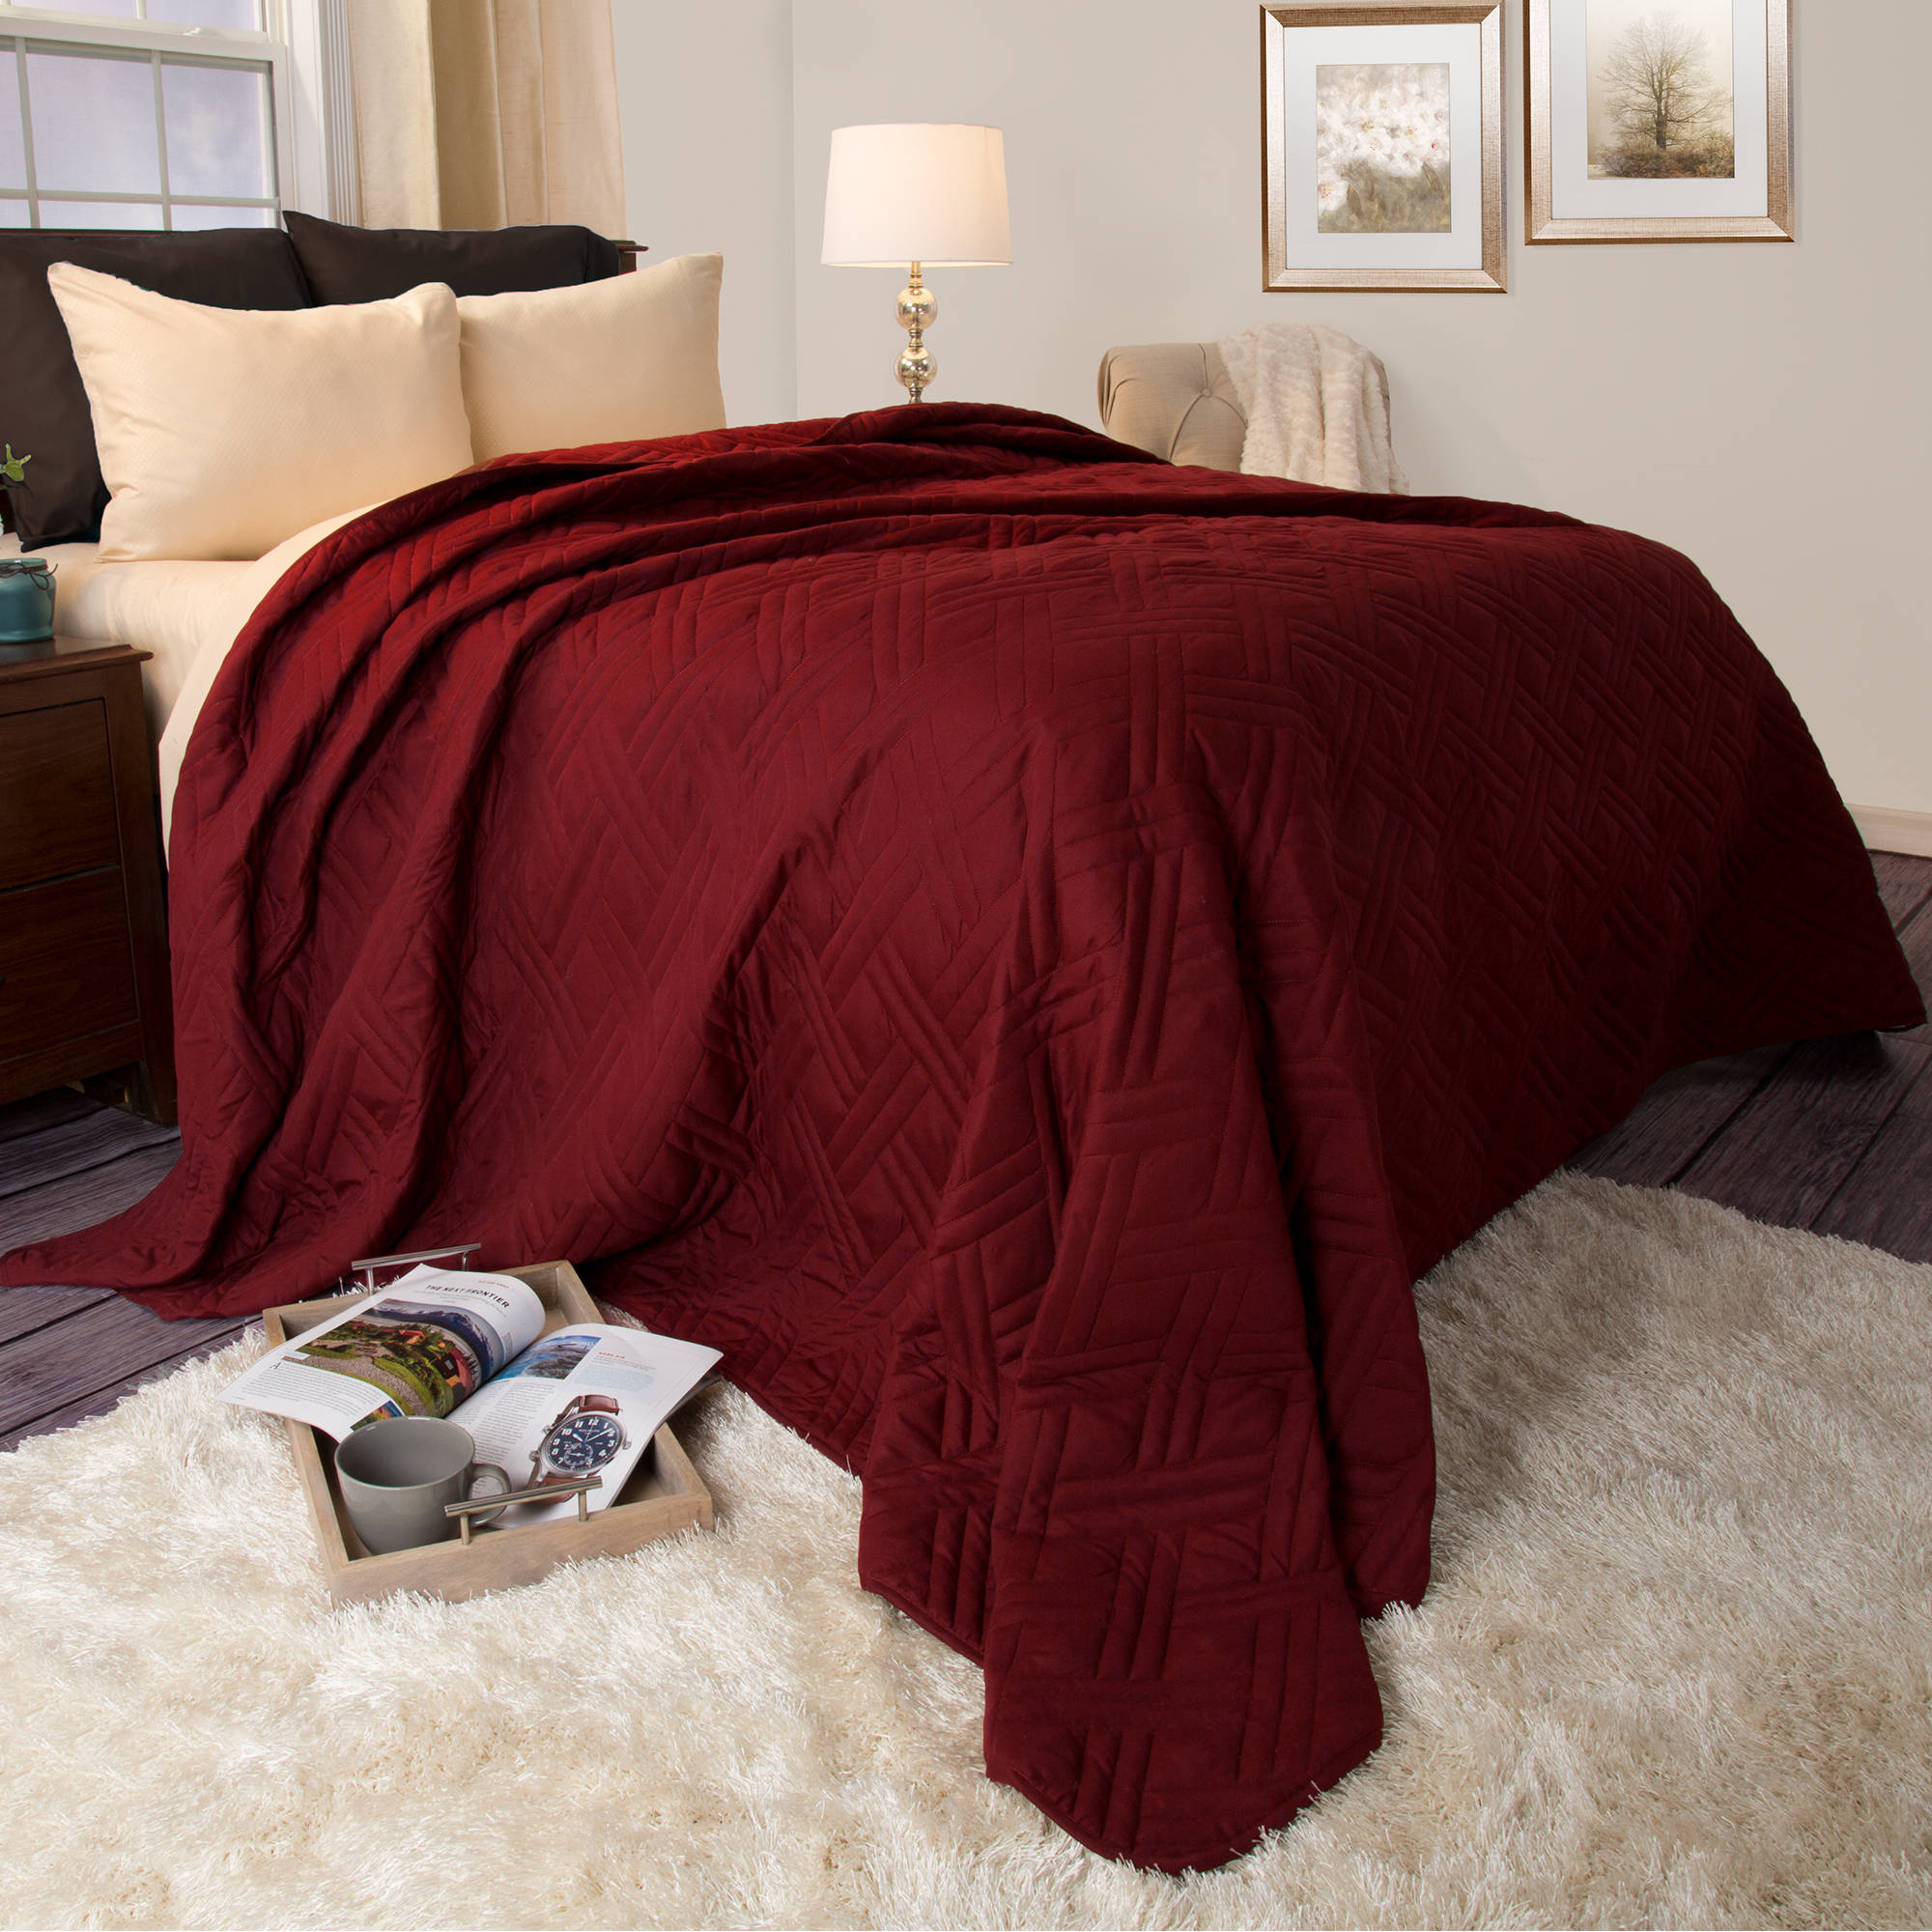 Somerset Home Solid Color Bed Quilt, King, Burgundy by Trademark Global LLC